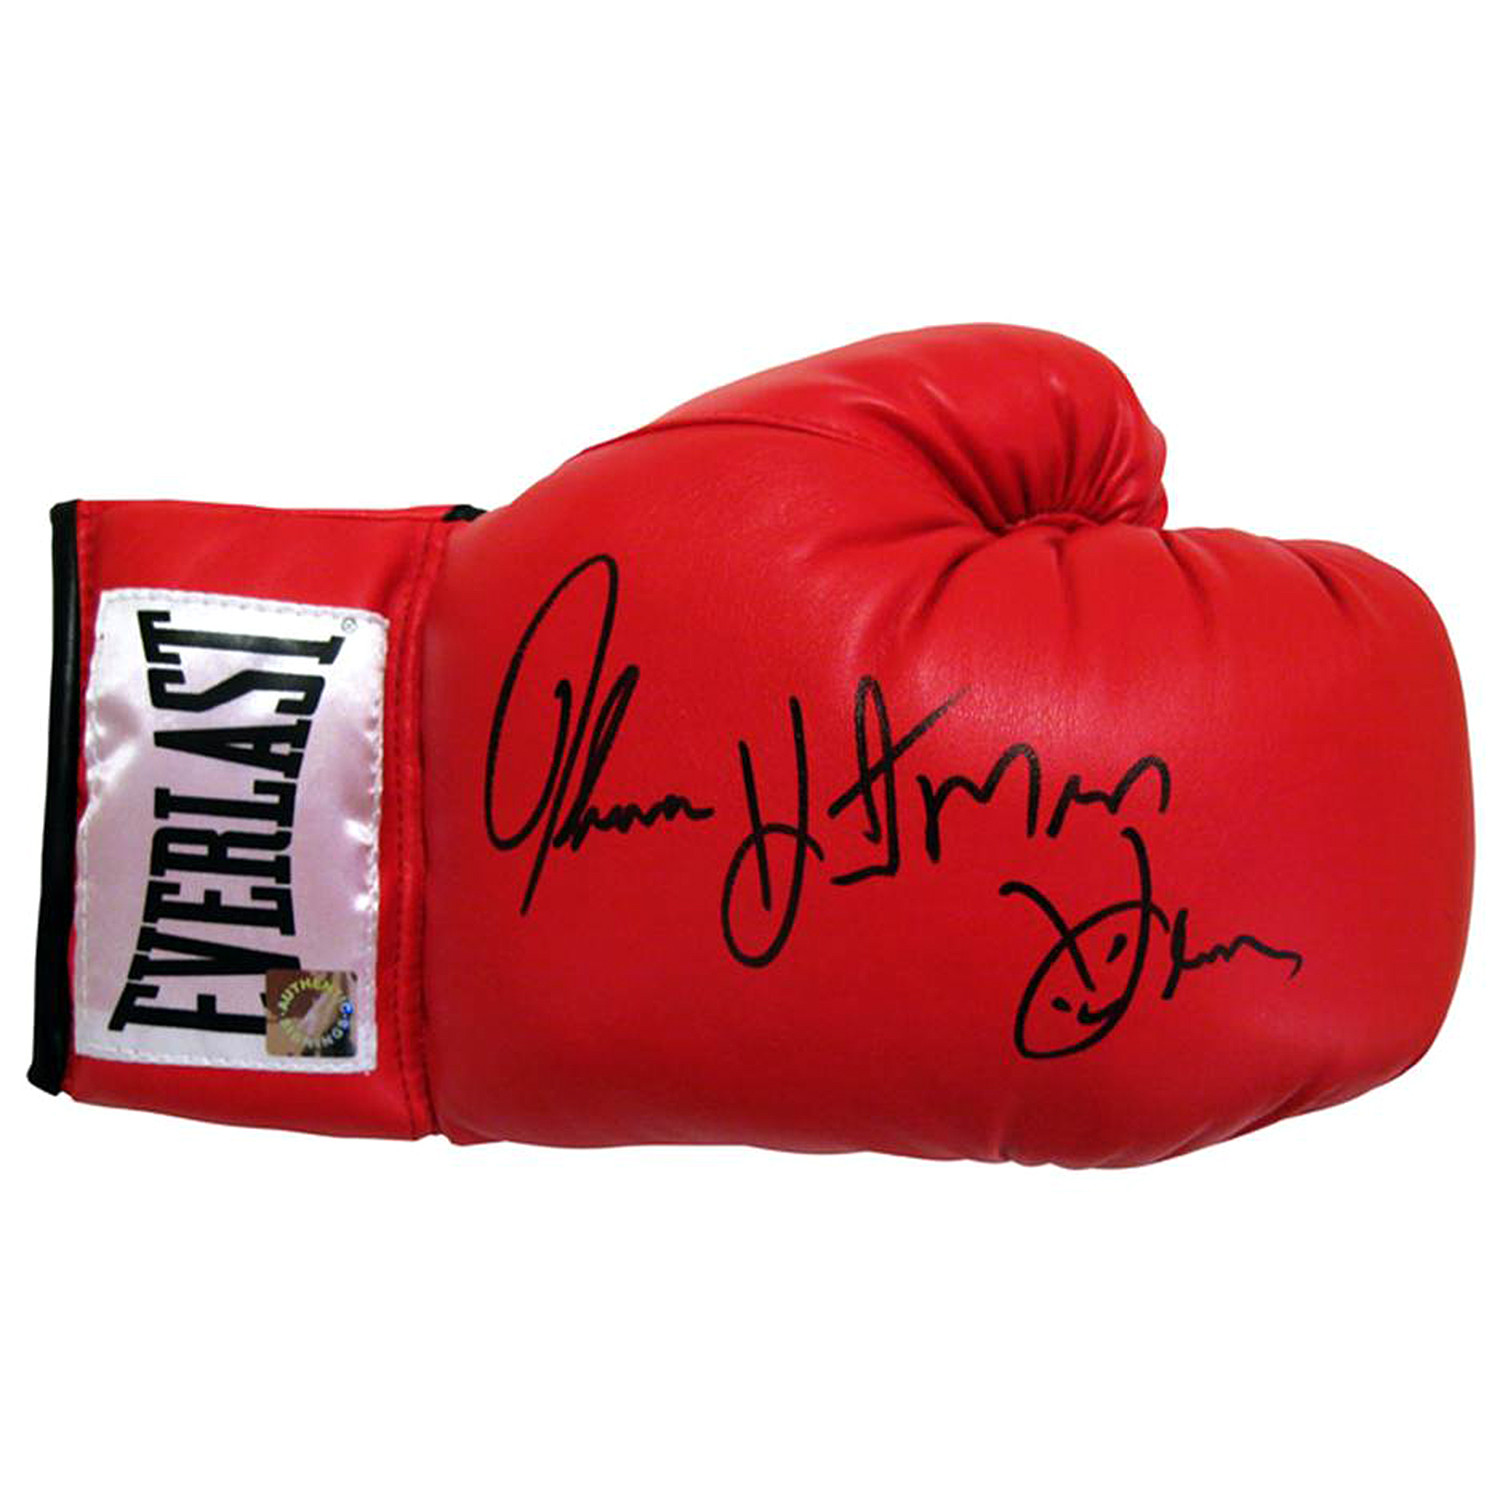 Autographed Everlast Boxing Glove Thomas Hitman Hearns Authentic Signings Touch Of Modern